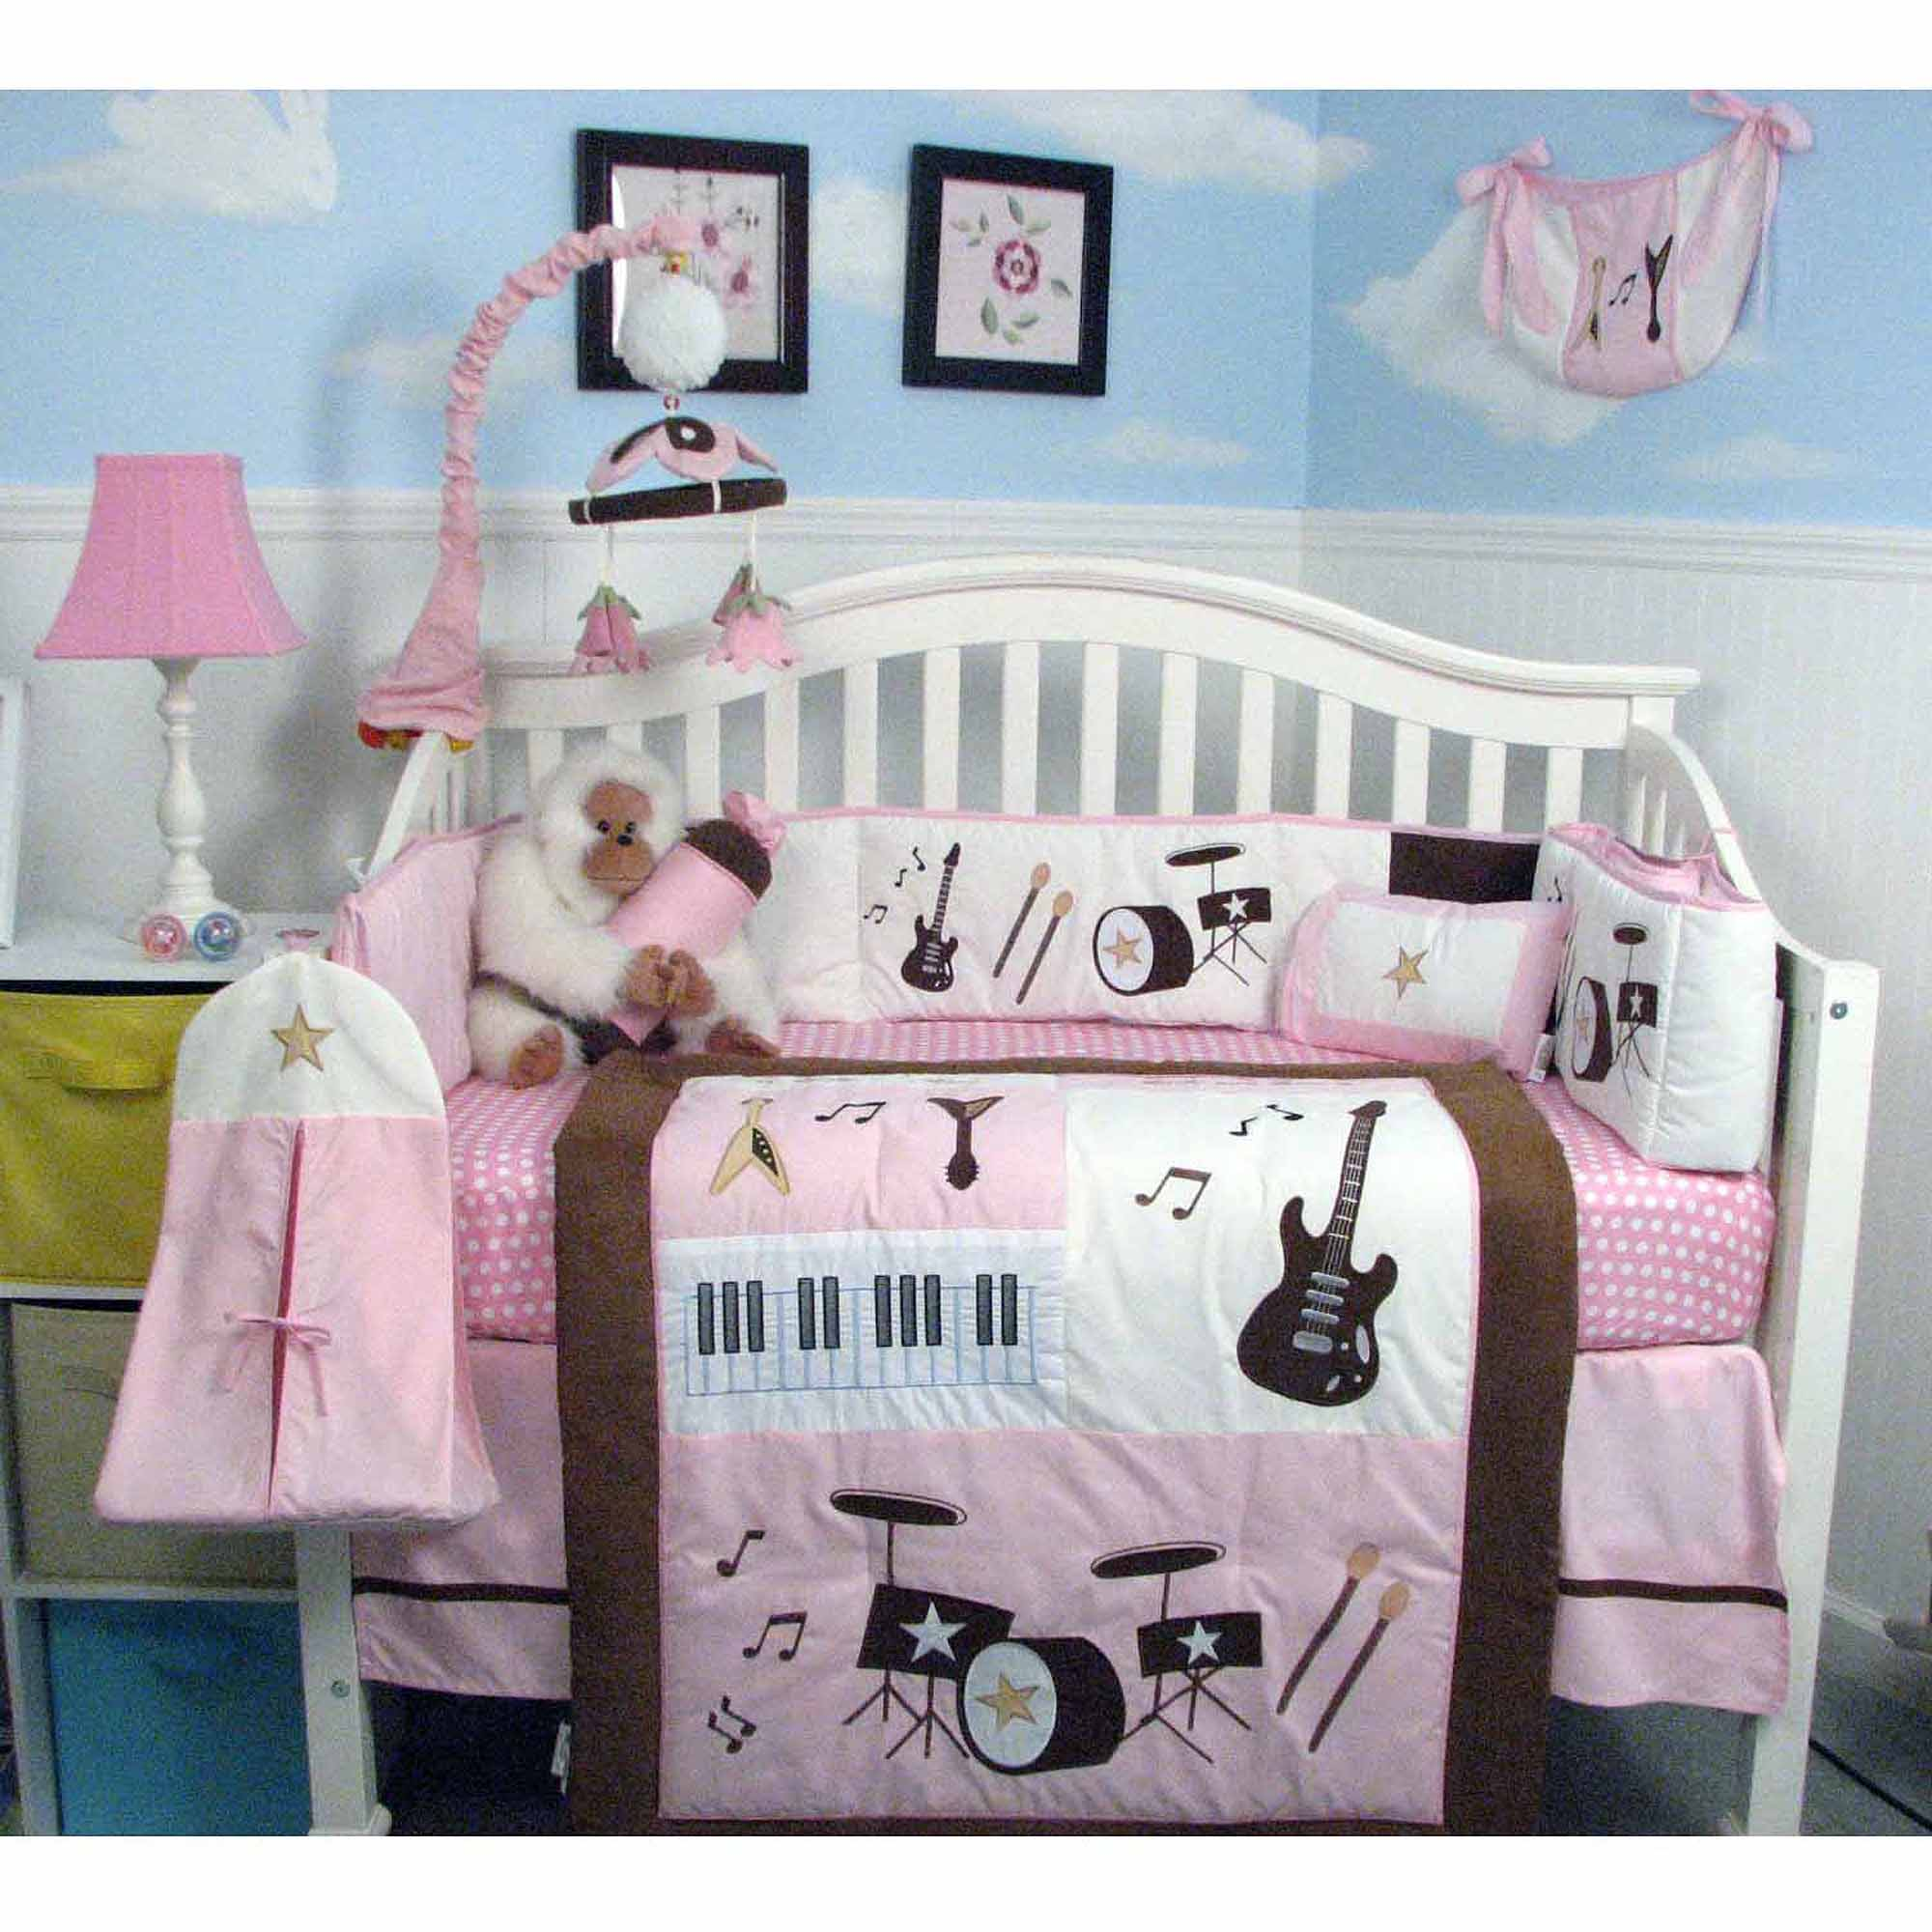 SoHo Pink and Brown Rock Band Baby Crib Nursery Bedding Set